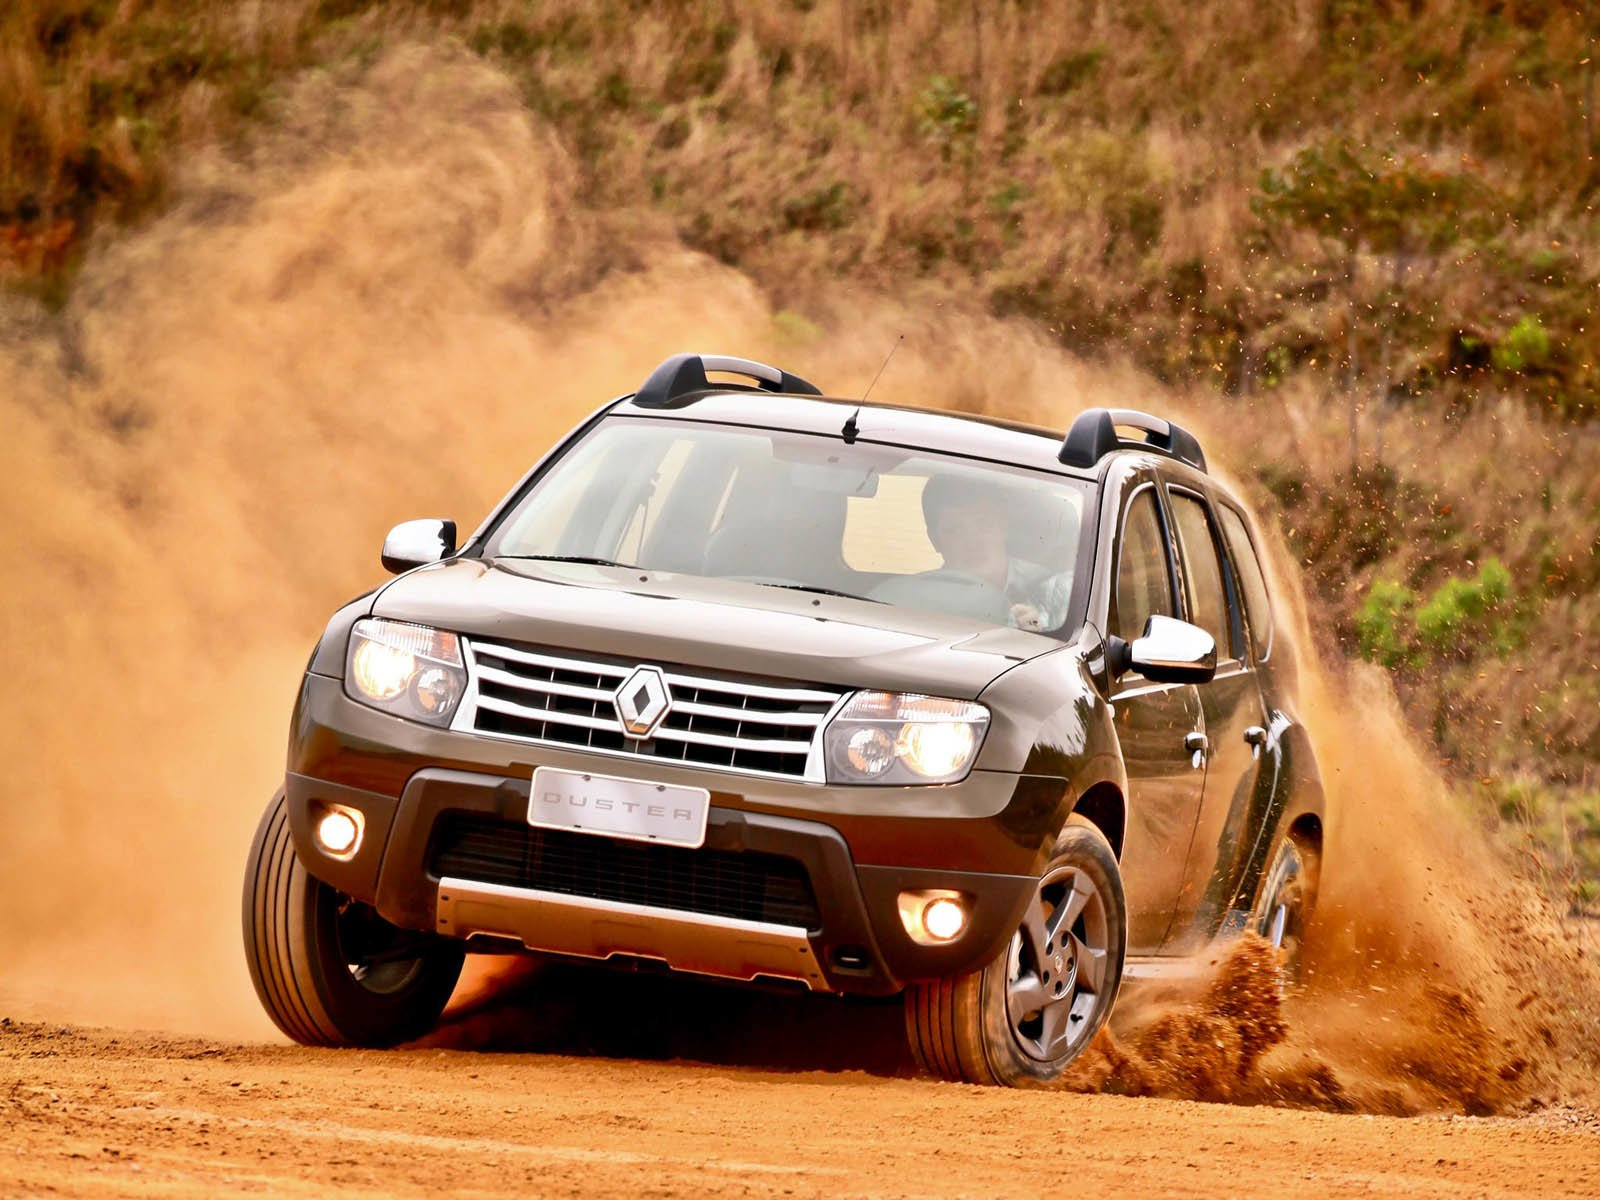 Latest Wallpapers Renault Duster Car Free Download